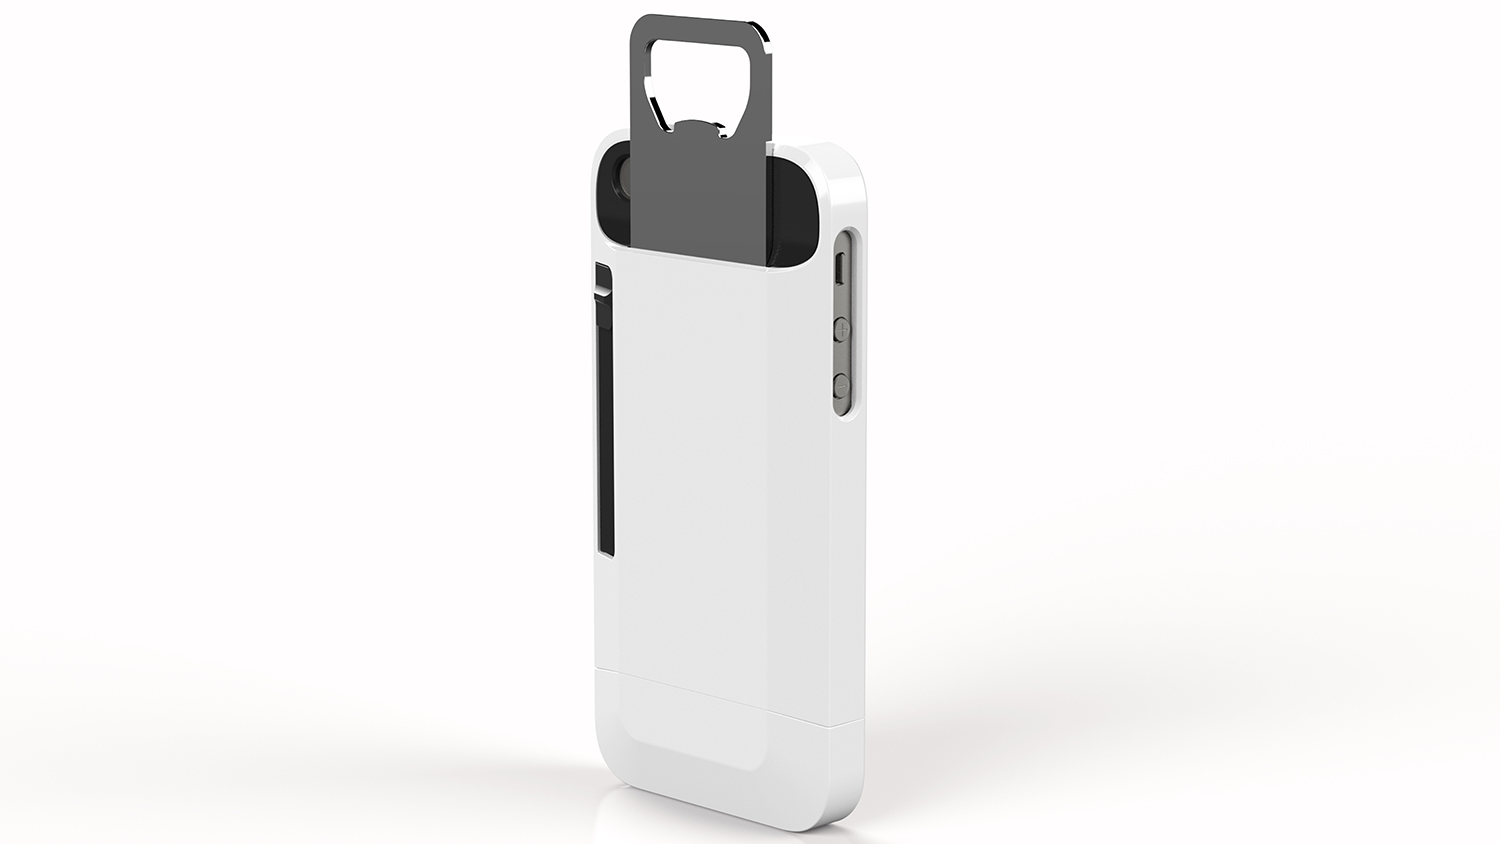 West280 iOpener Case for iPhone 5